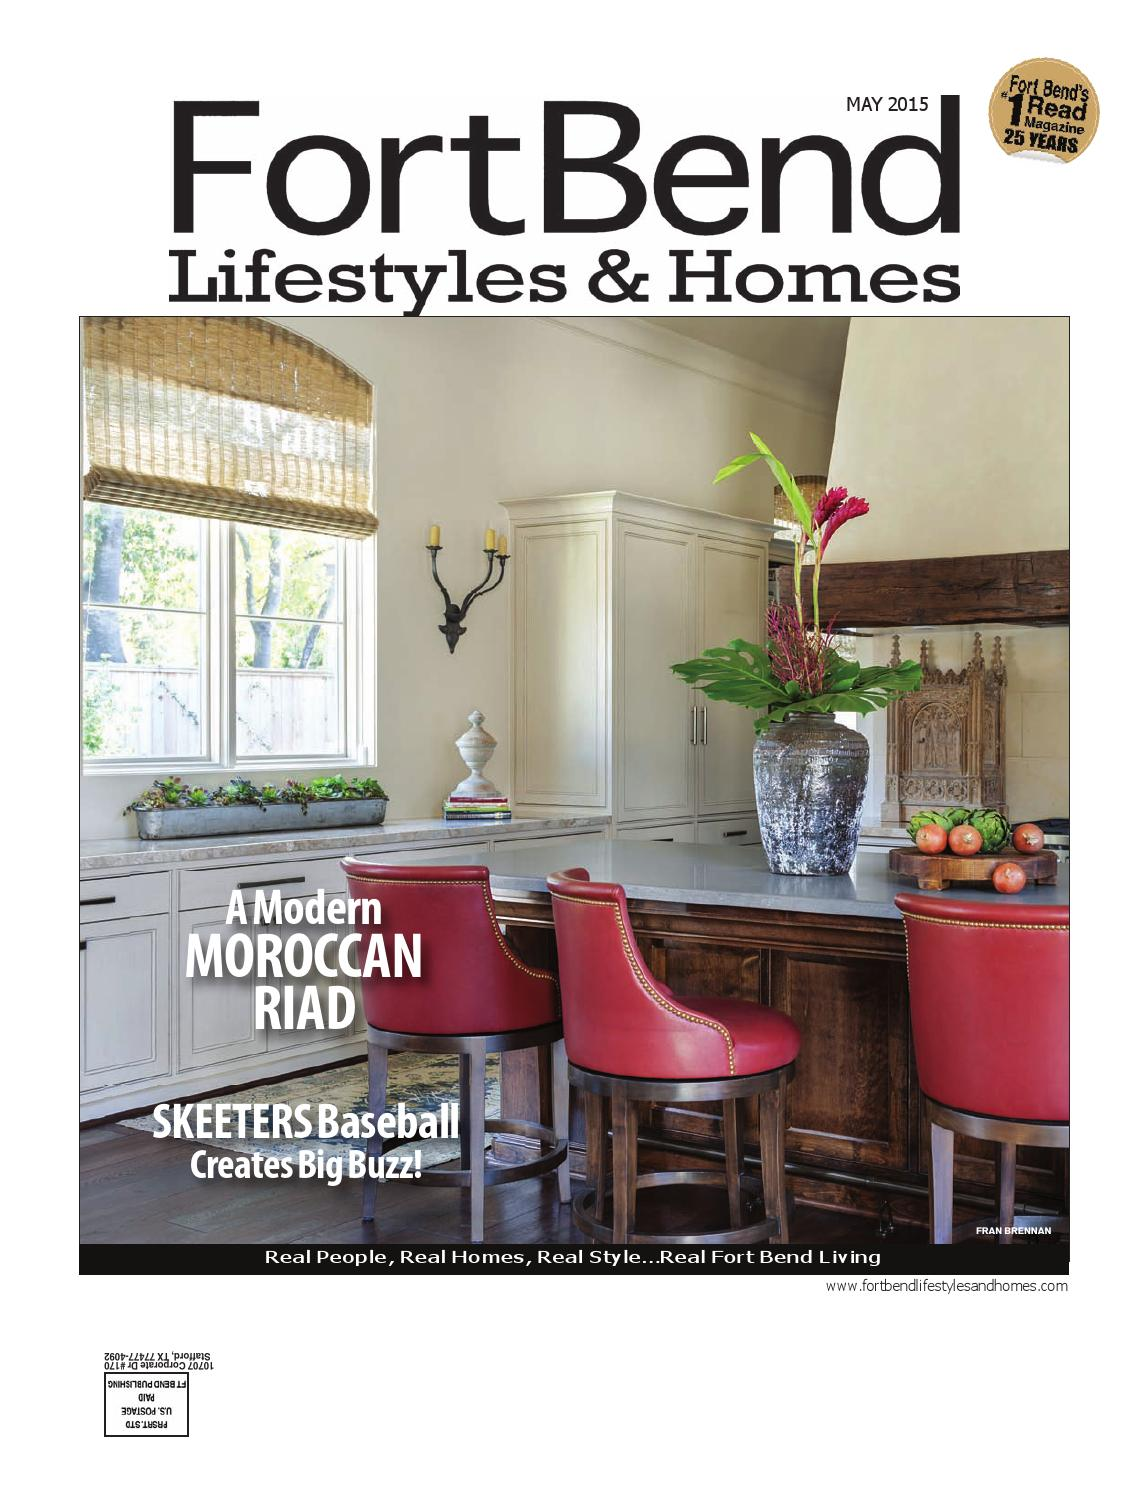 aa995ecbda318 Fort Bend Lifestyles   Homes May 2015 by Lifestyles   Homes Magazines Fort  Bend Publishing - issuu